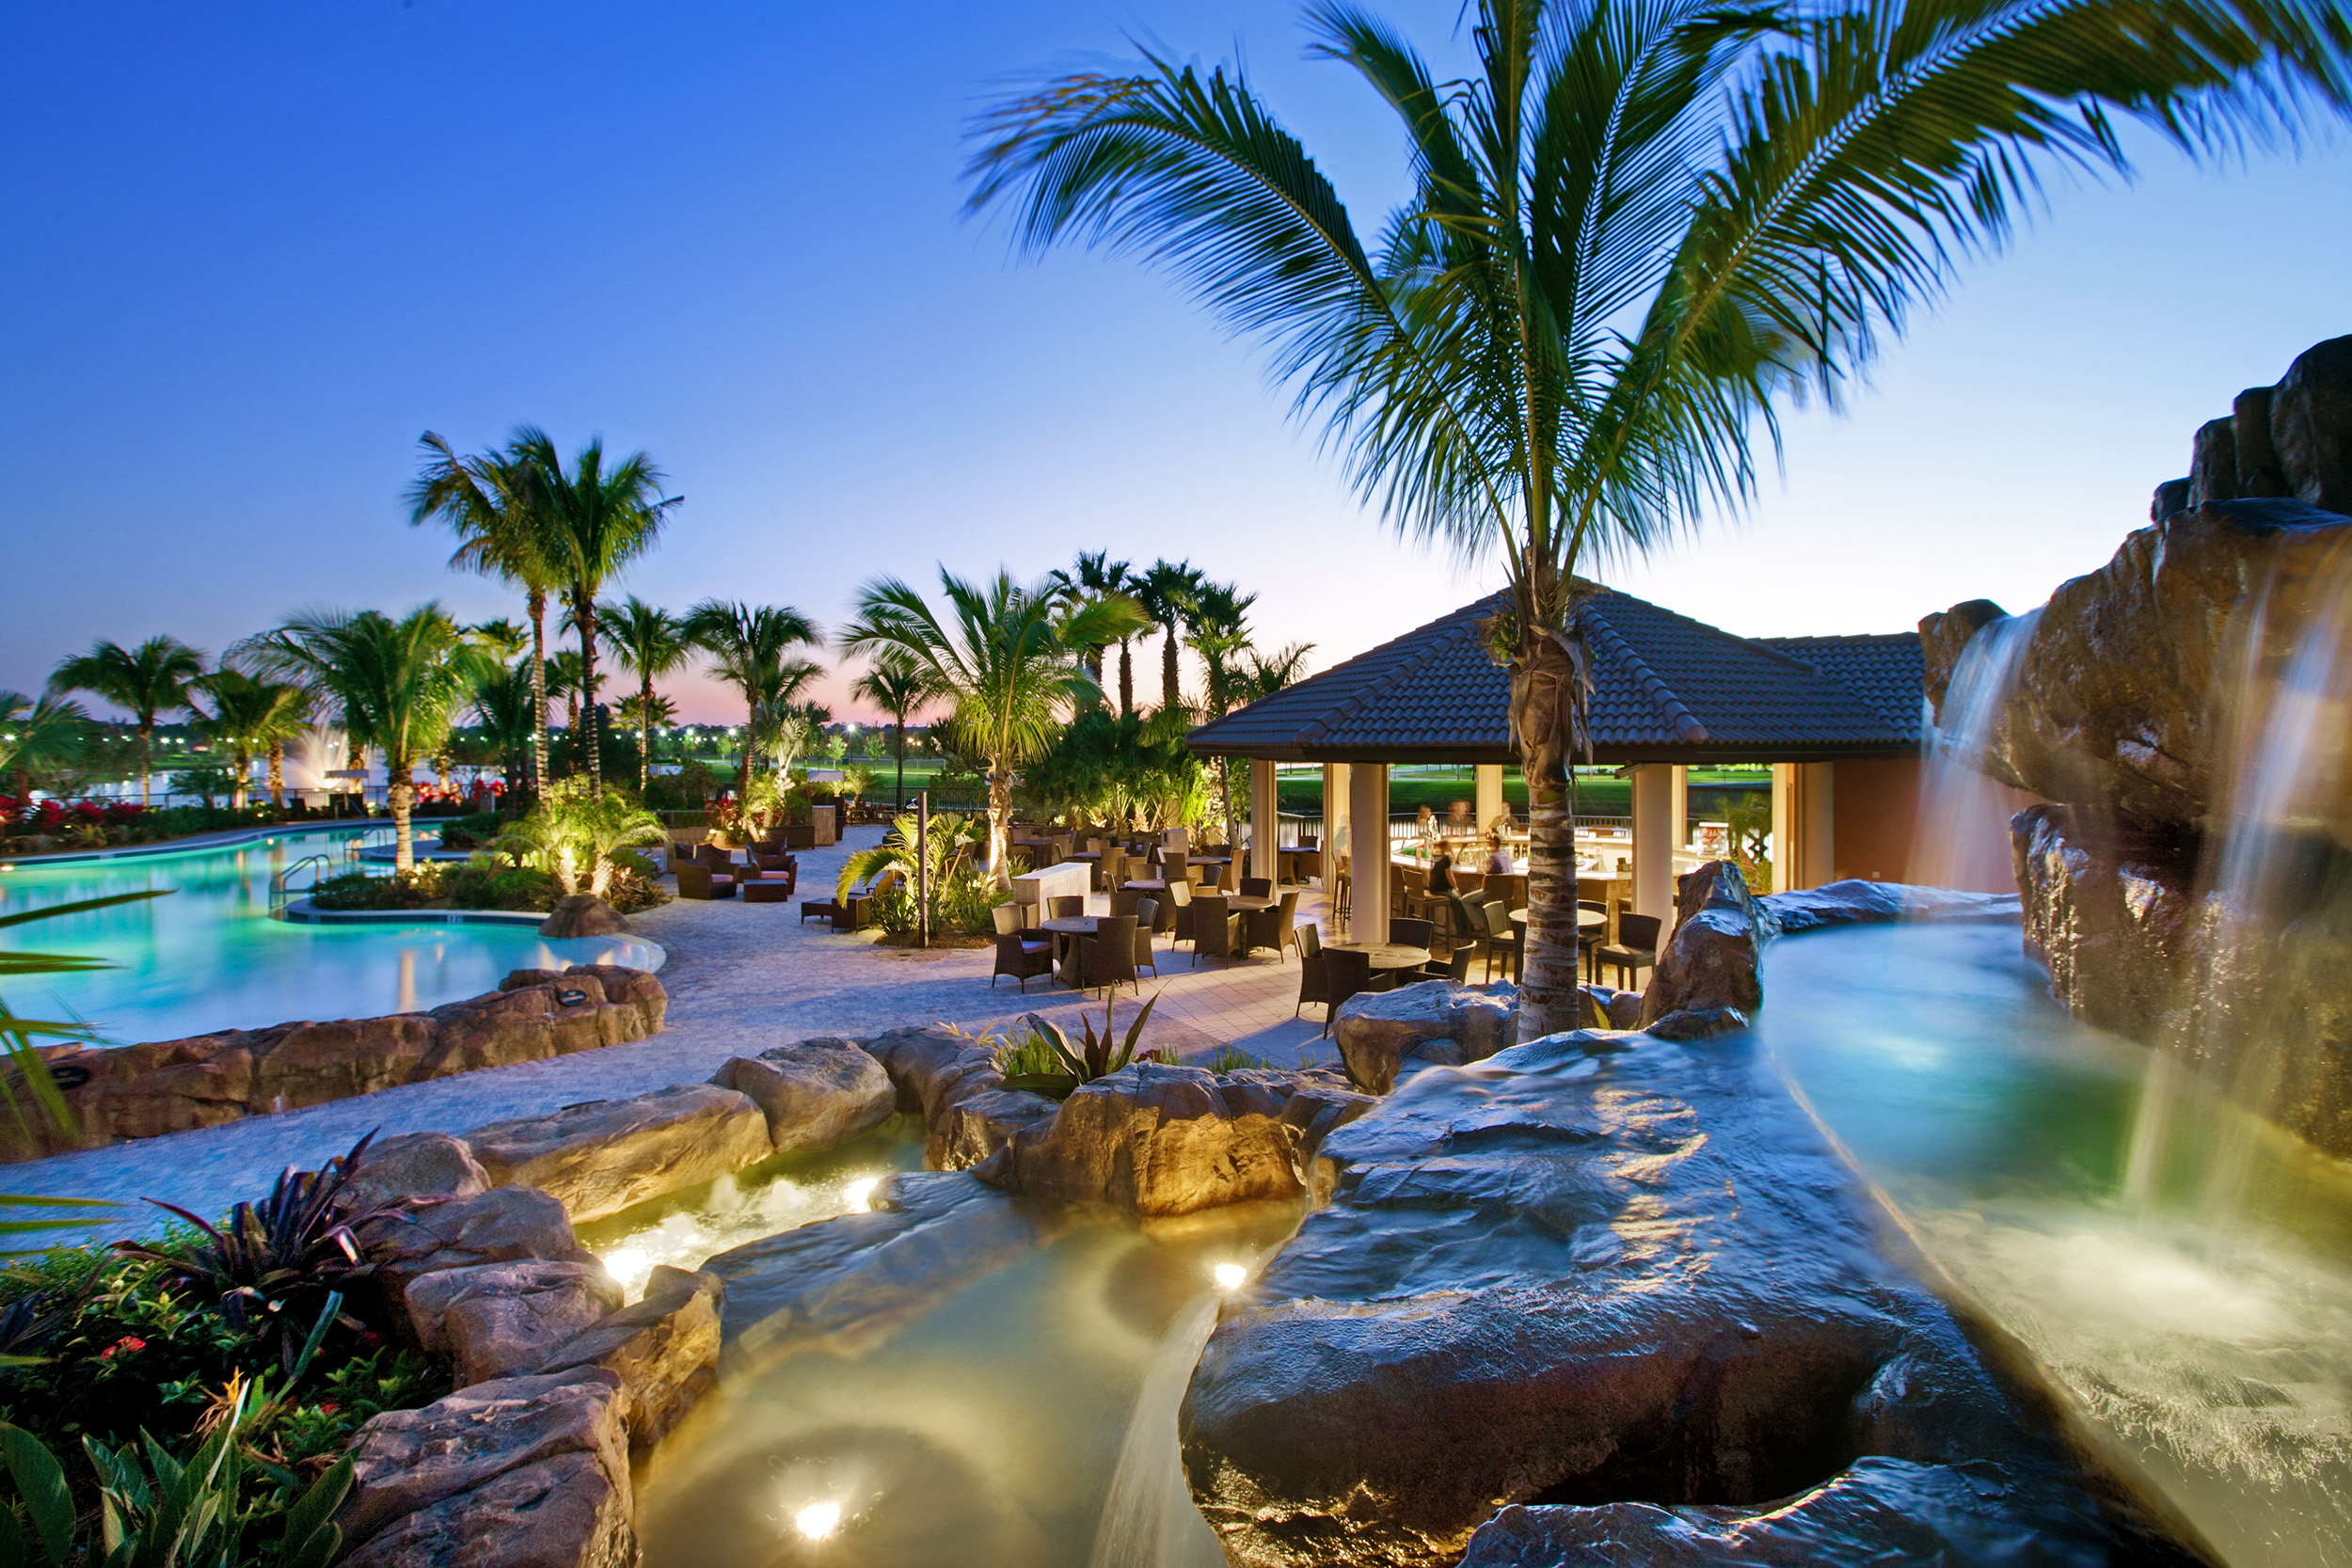 Paseo Community Clubhouse & Pool